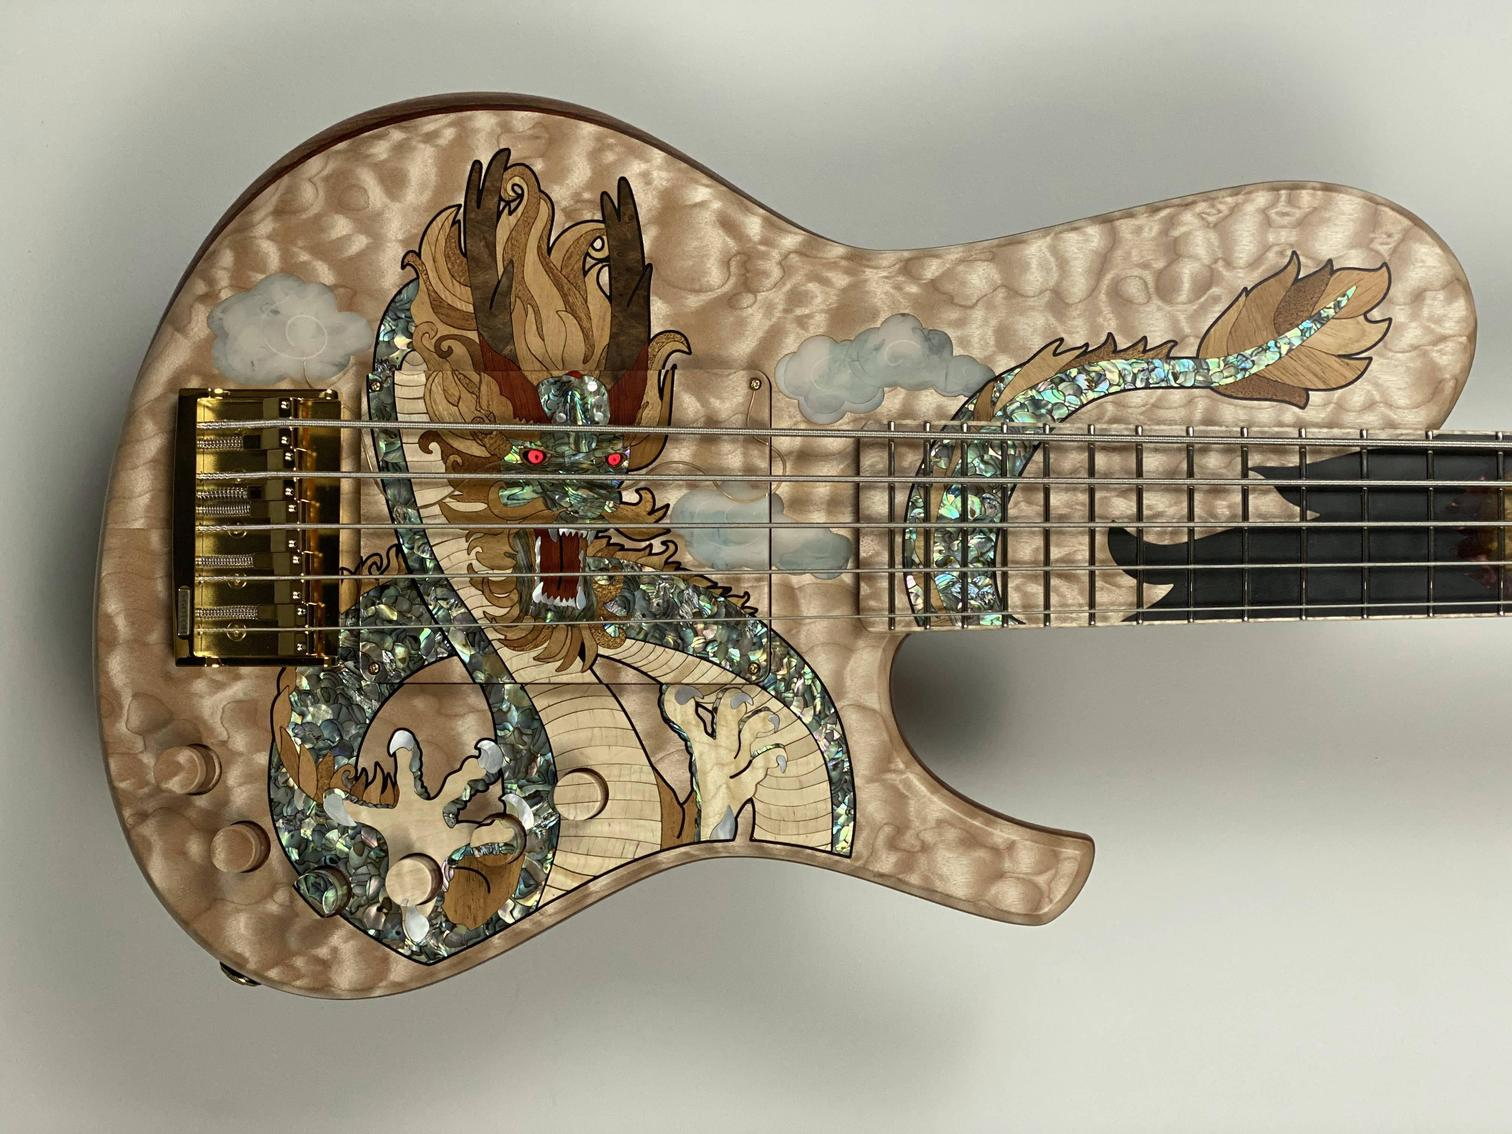 Discovering Dtc - Custom Bass Guitar luthier from China